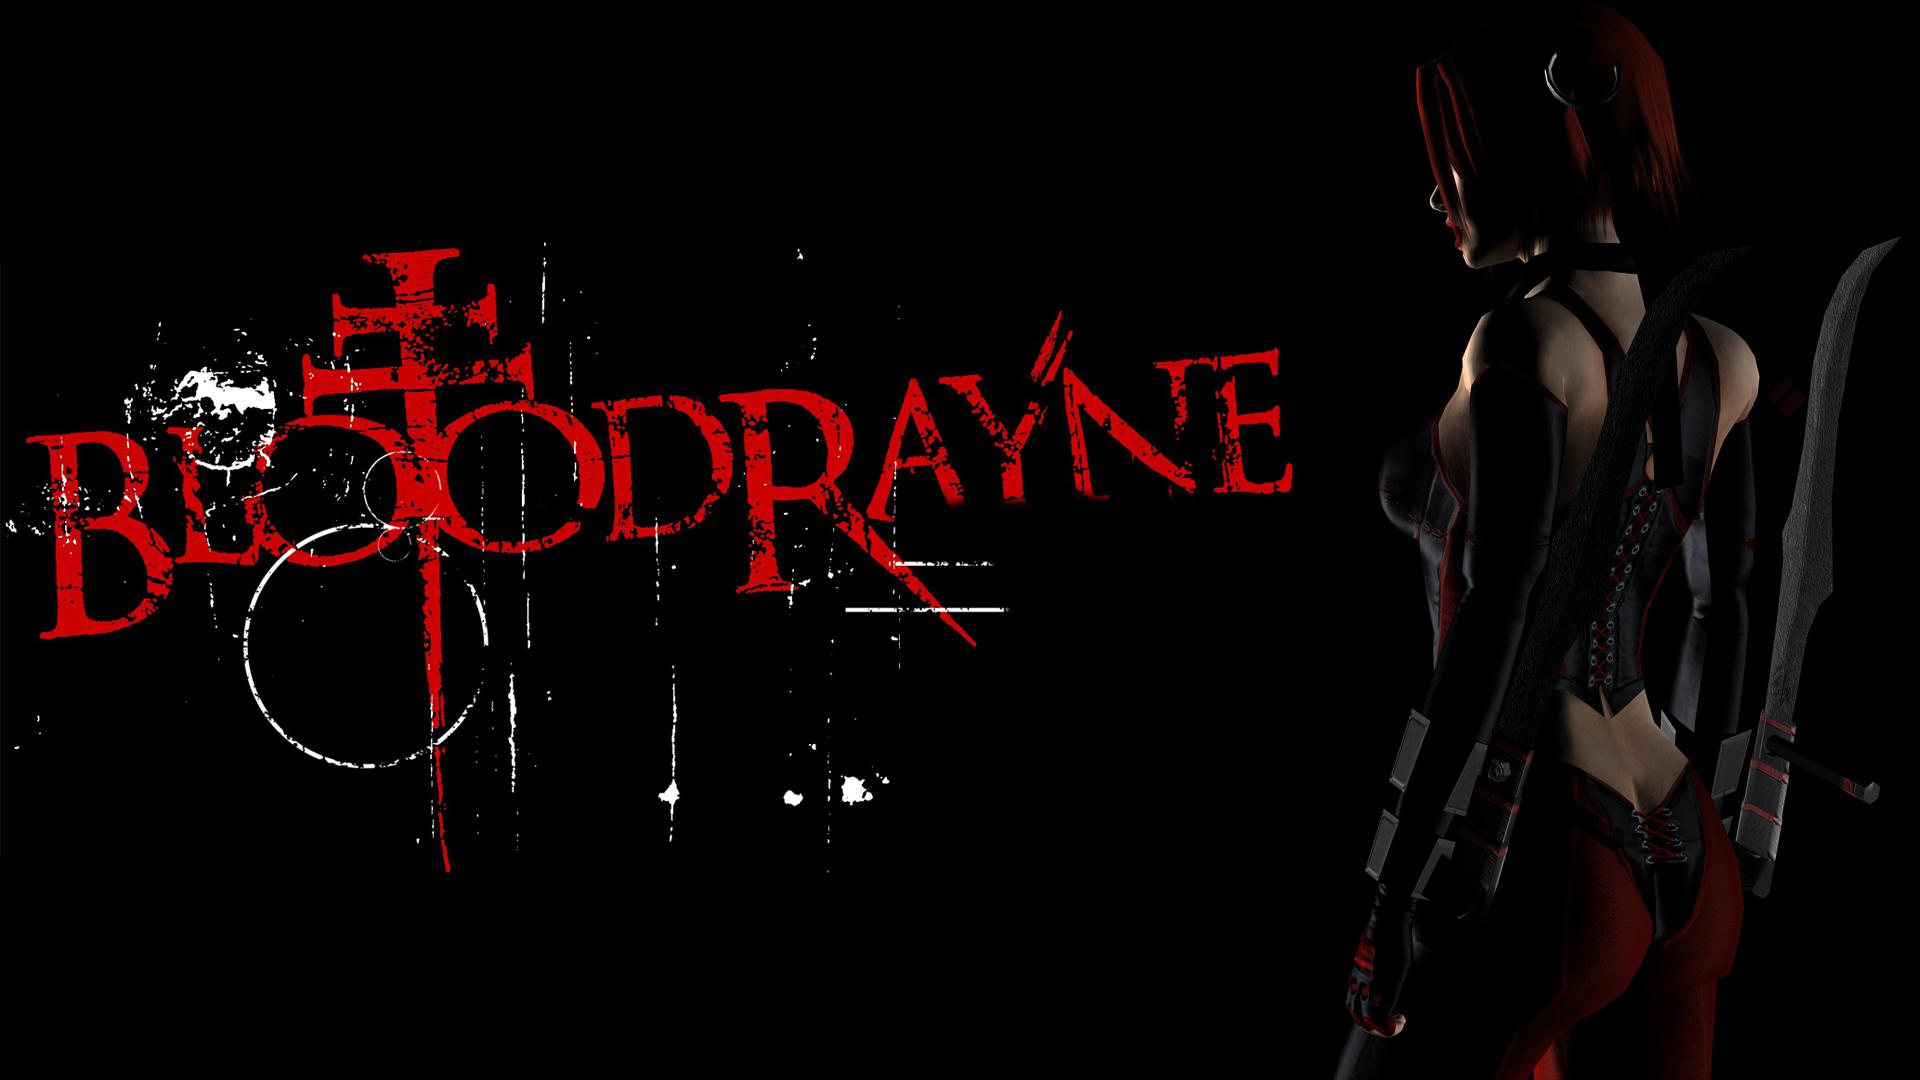 BloodRayne HD Wallpapers and Background Images